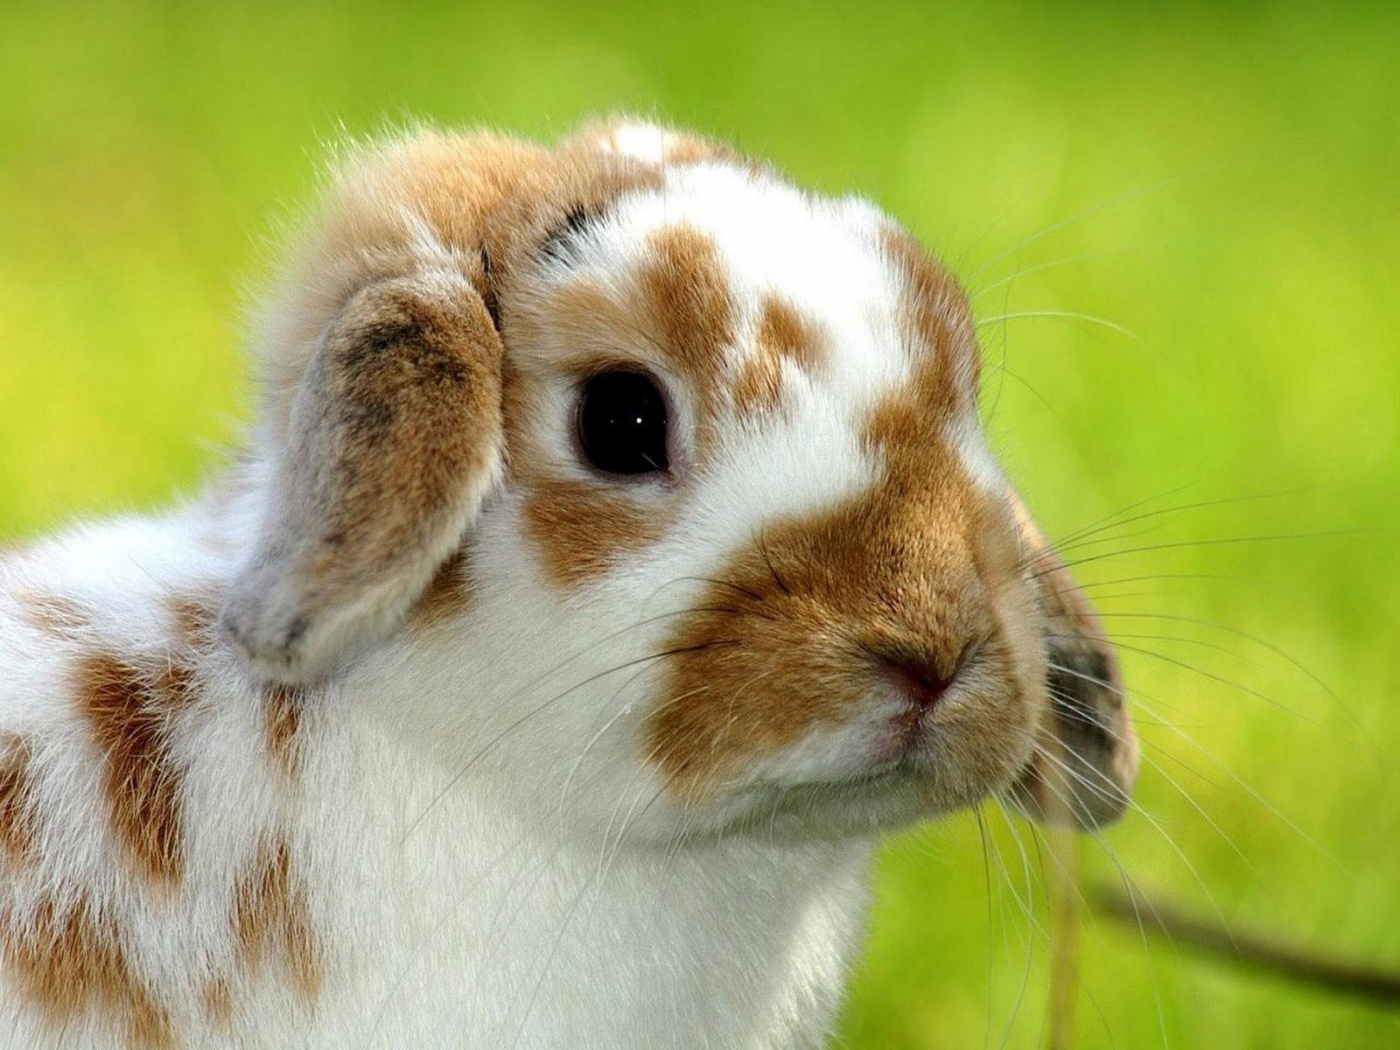 33814 download wallpaper Animals, Rabbits screensavers and pictures for free